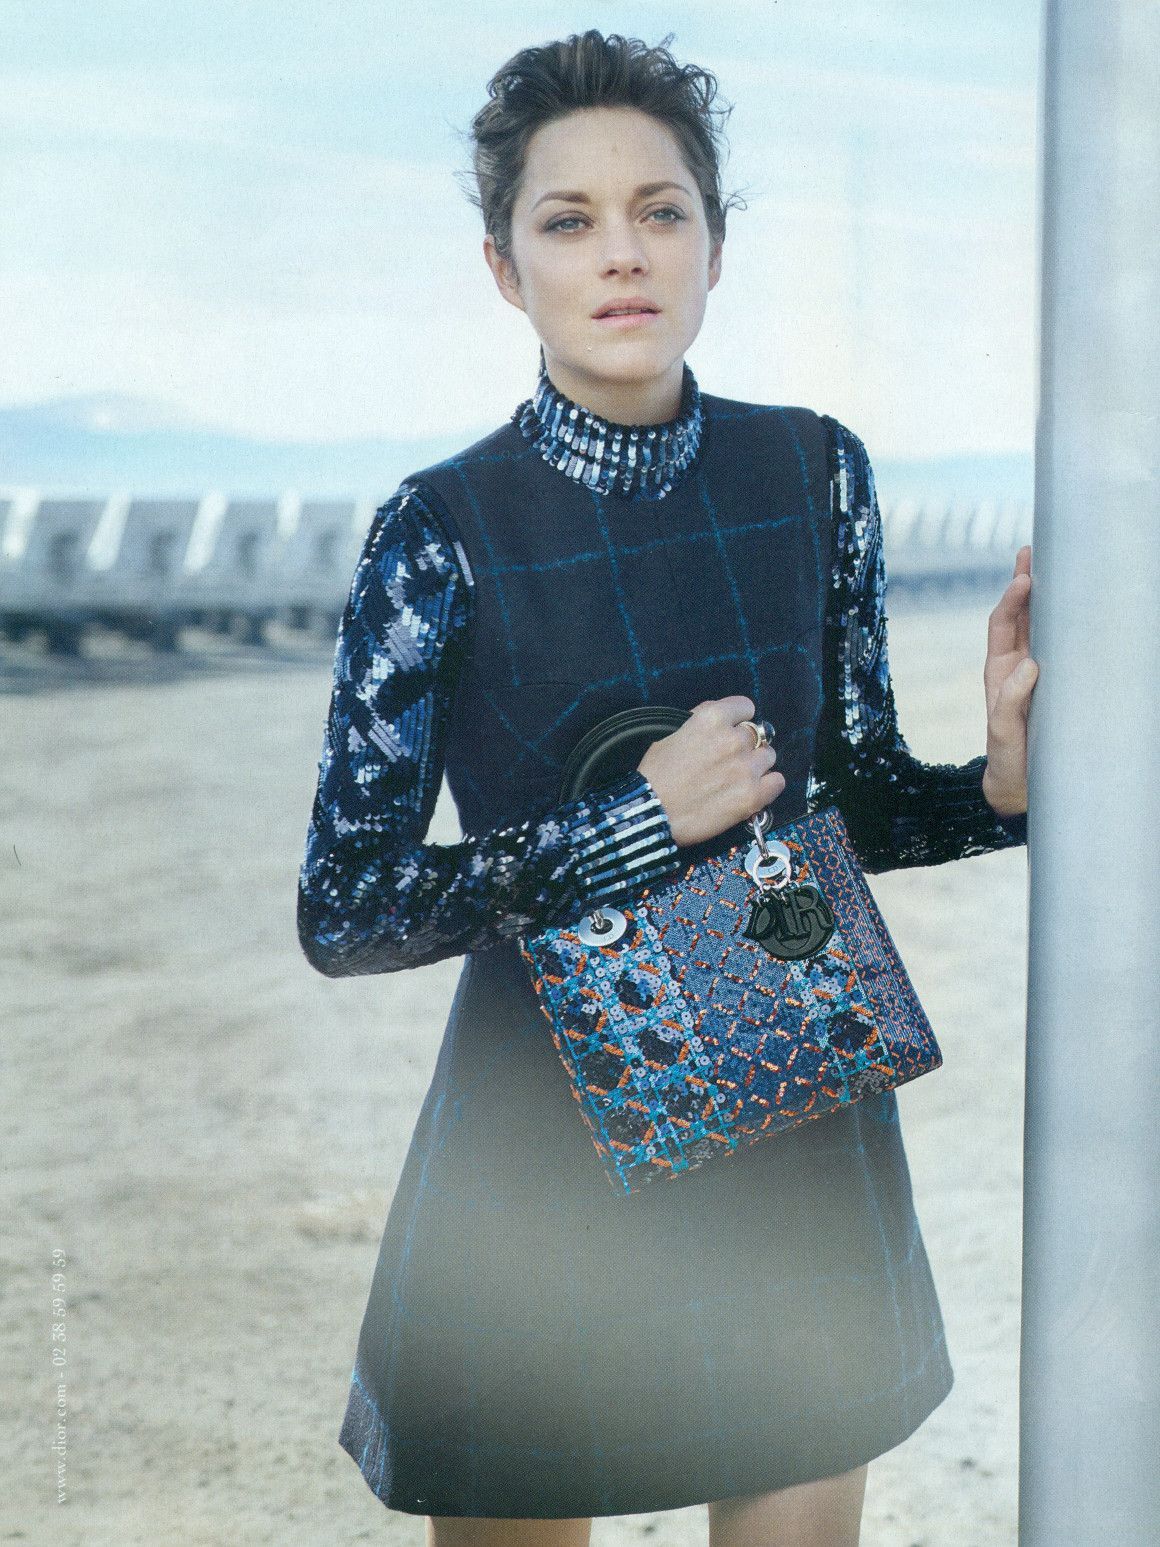 Marion Cotillard Stuns in Lady Dior's Resort 2019 Ad Campaign